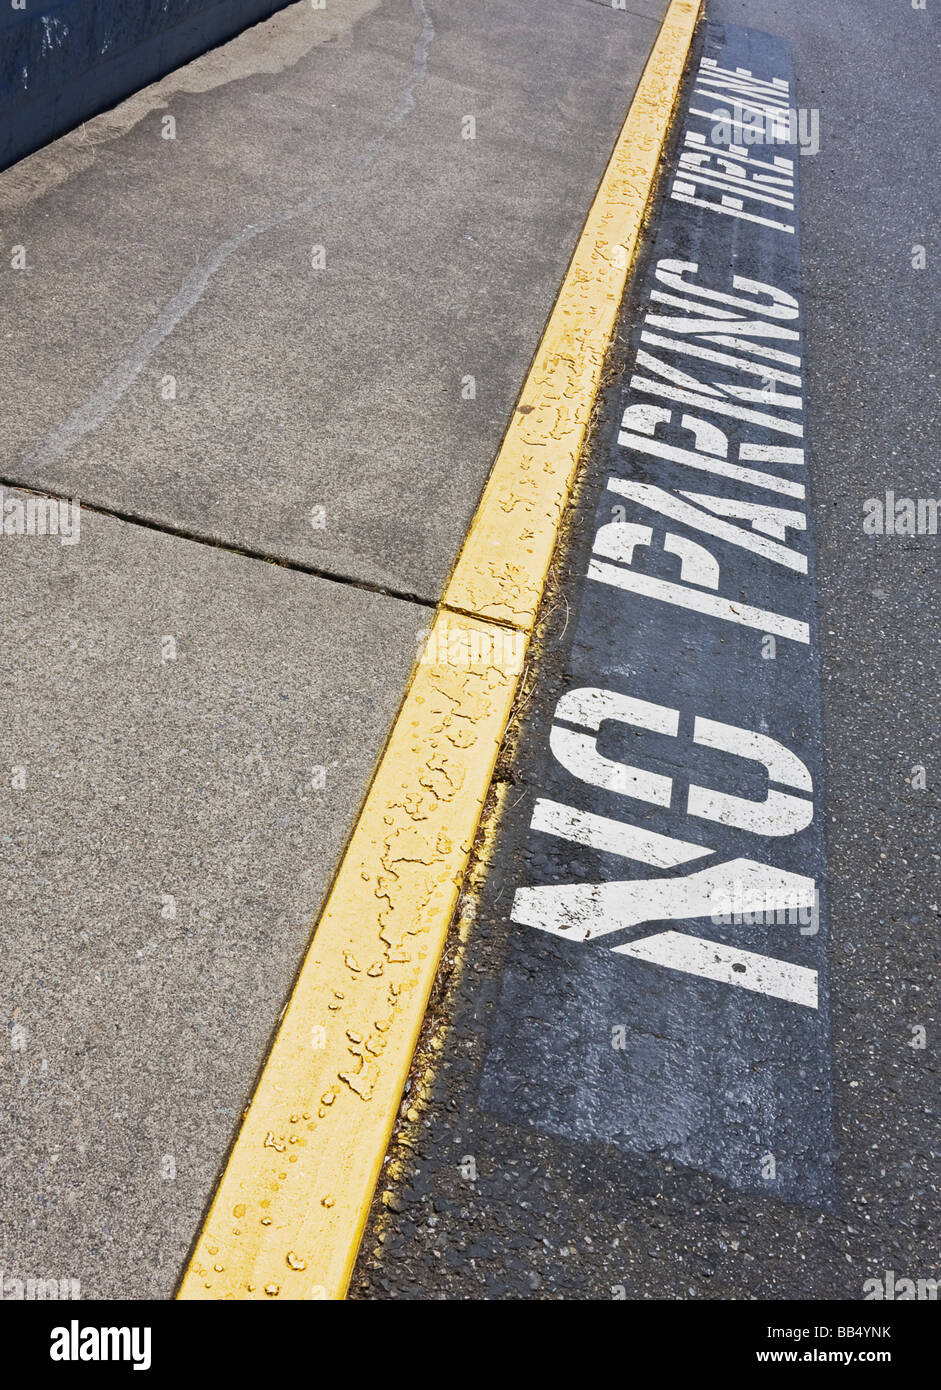 'no parking fire lane' stencil in parking lot - Stock Image